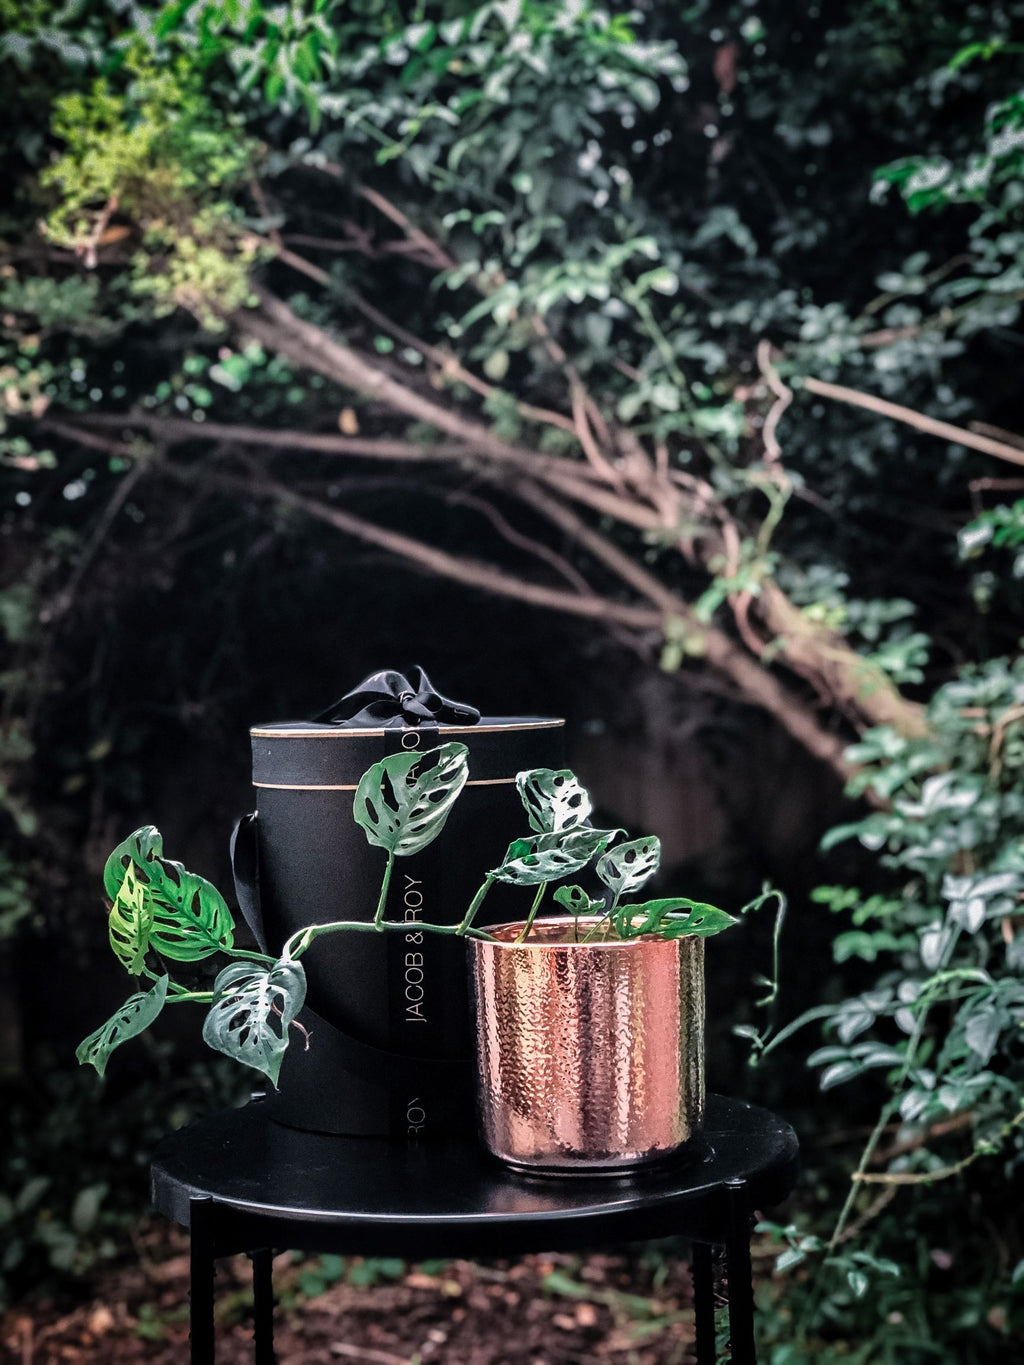 Swiss Cheese Vine in a rose gold pot